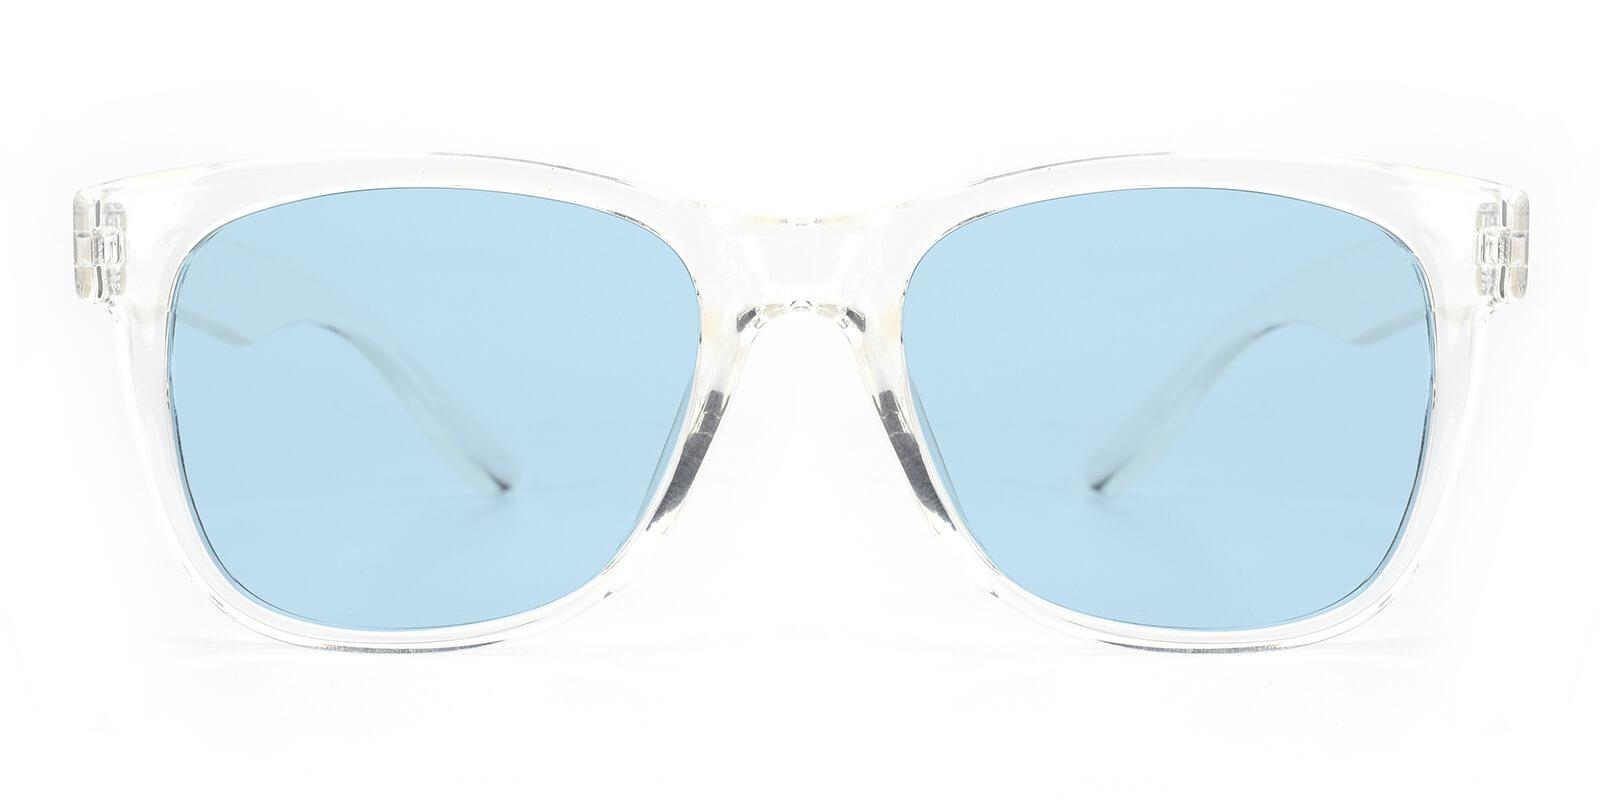 Tracly-Translucent-Square / Cat-TR-Sunglasses-additional2